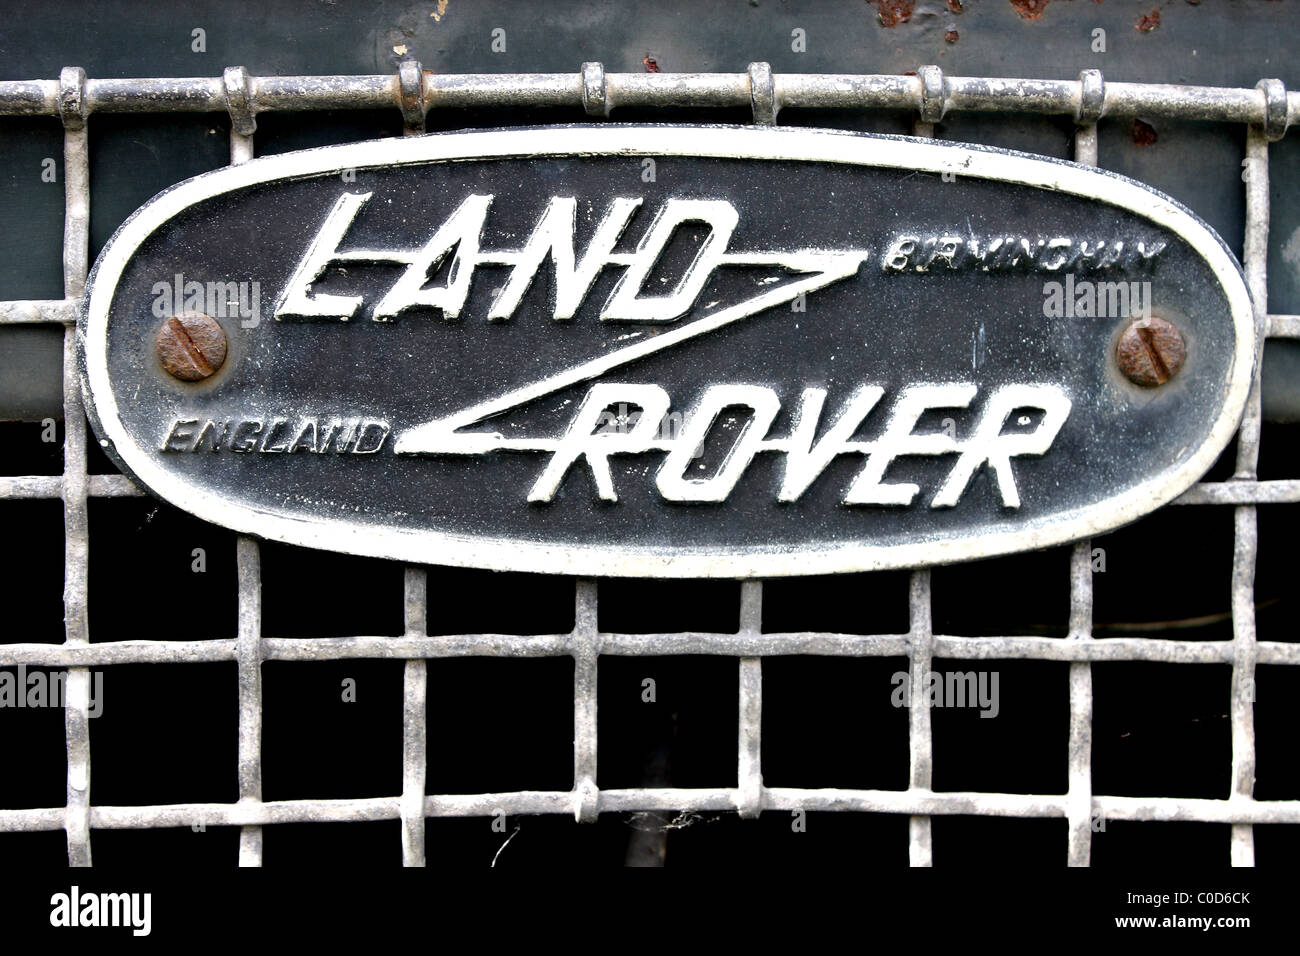 A Close Up Of The Land Rover Symbol Badge On The Front Grill Of A